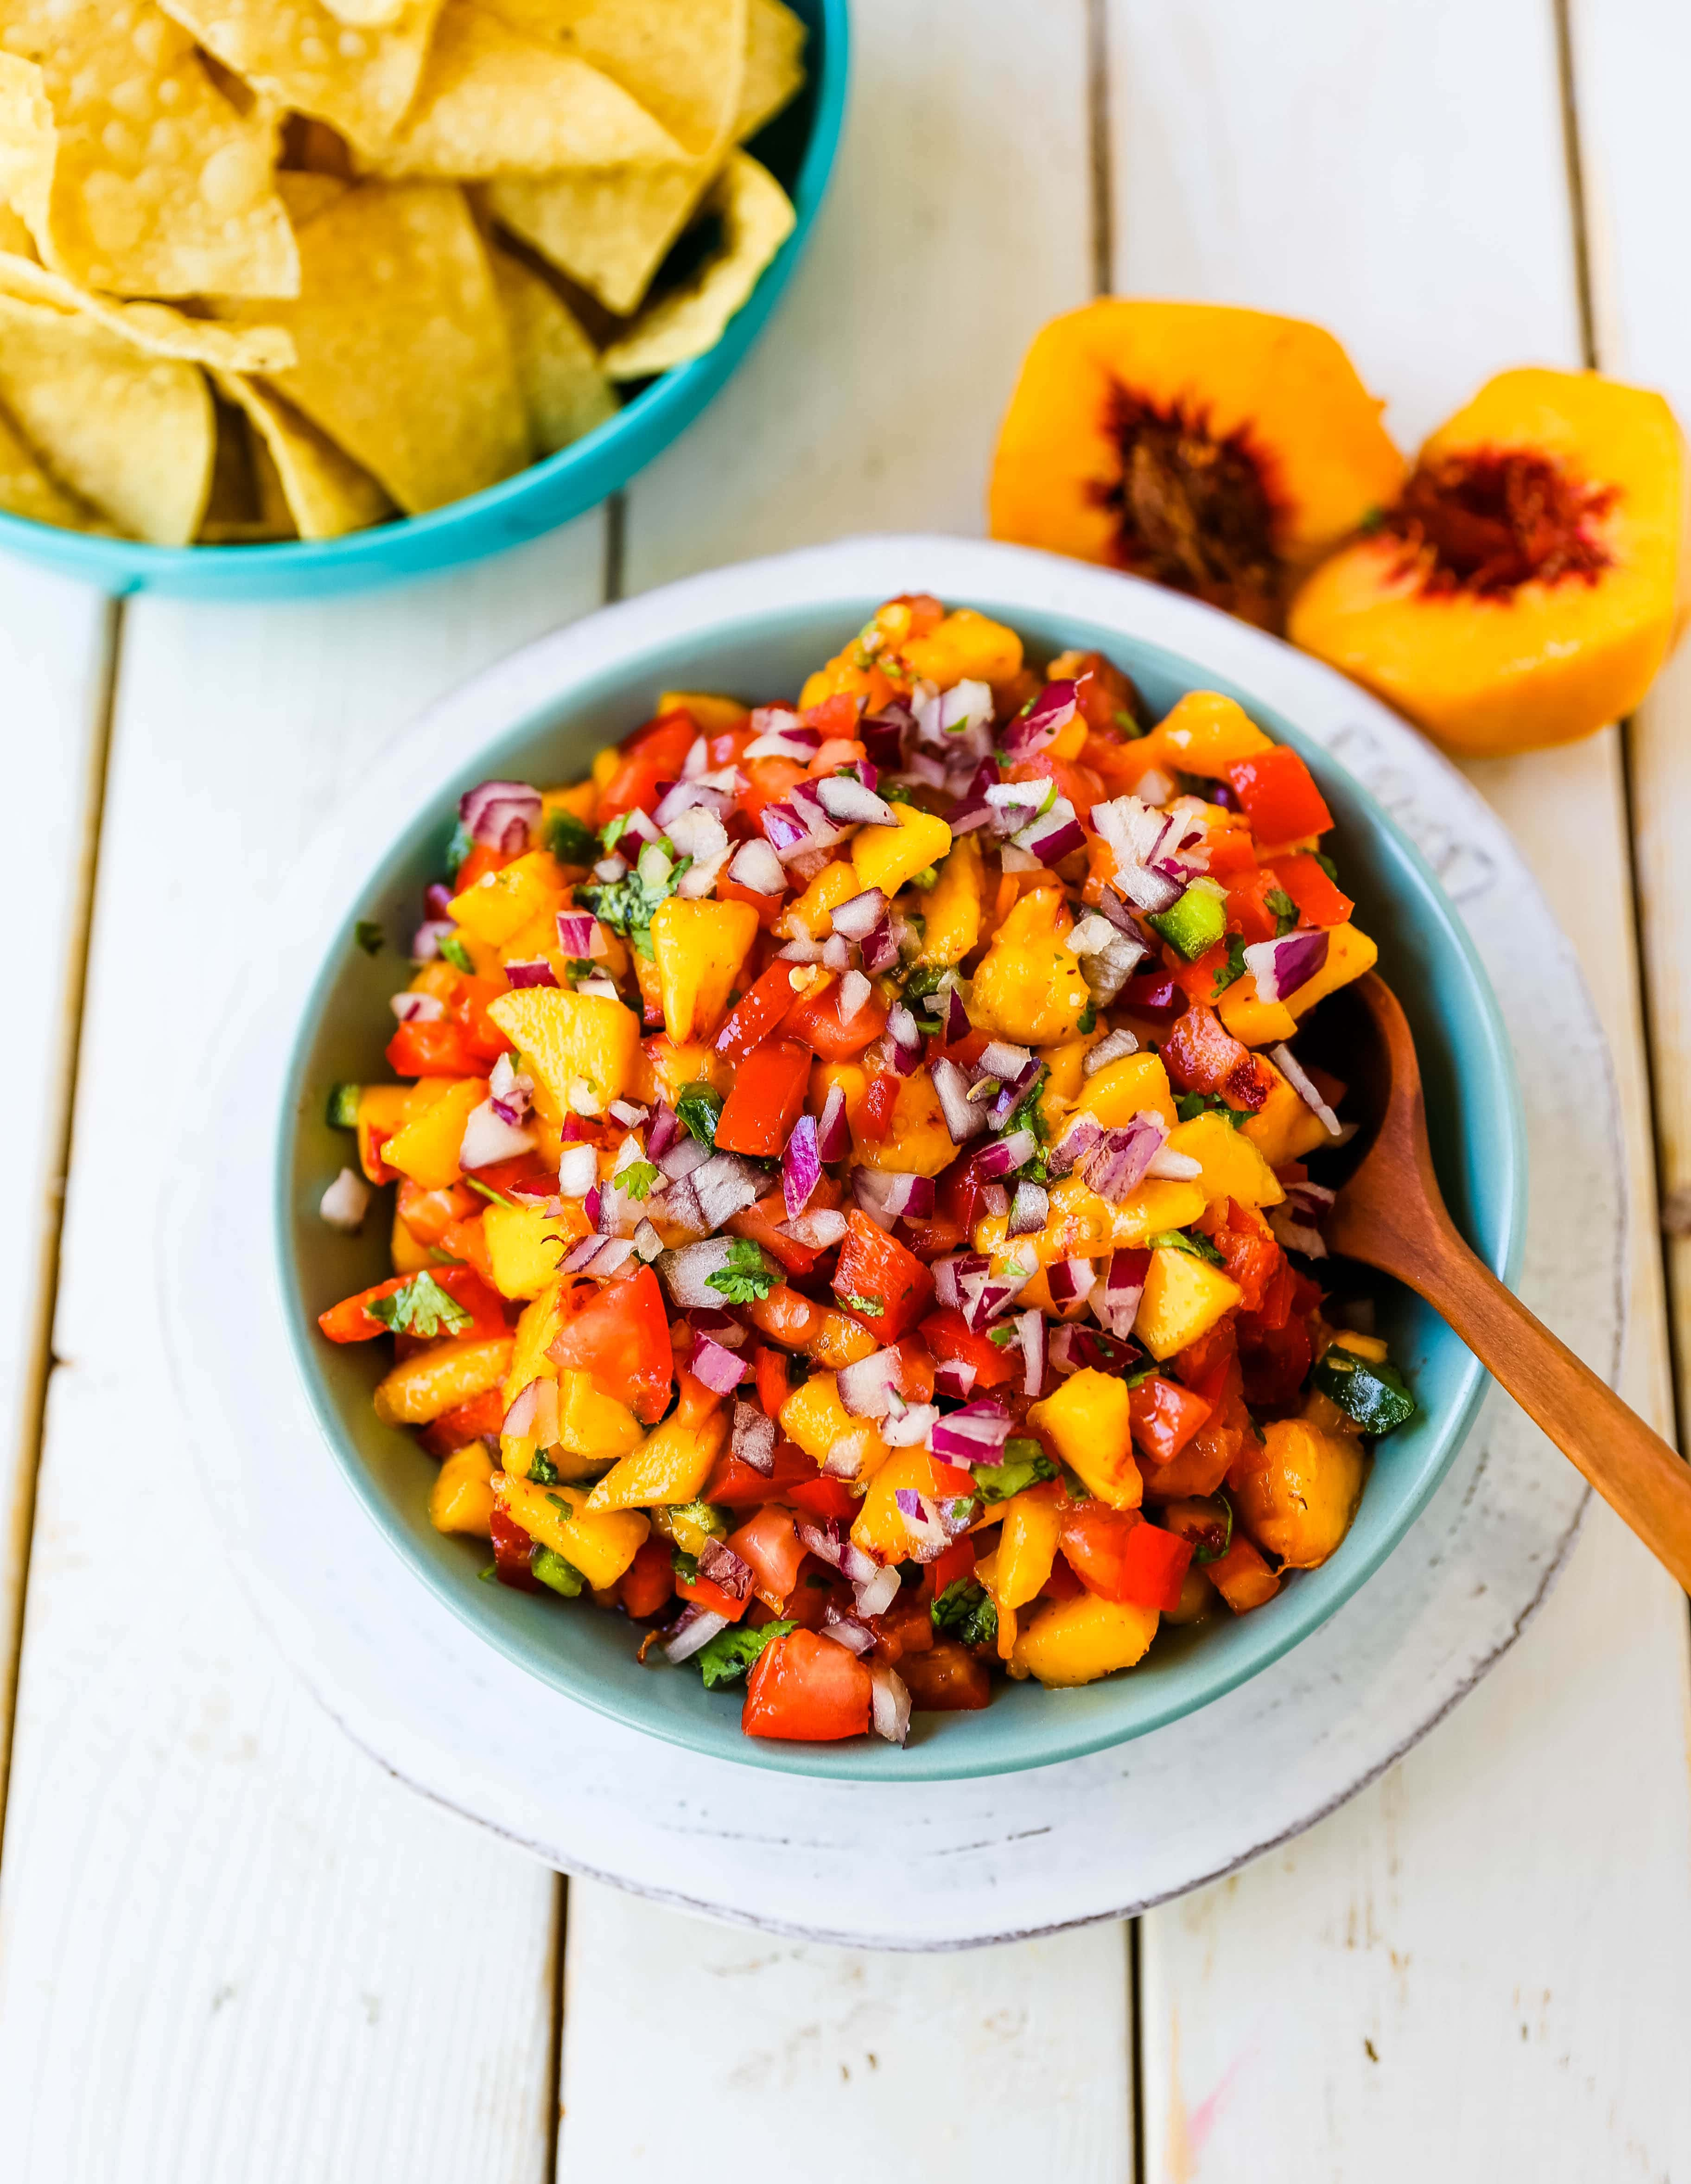 Peach Salsa. Fresh peach salsa with red pepper, jalapeño, red onion, tomatoes, cilantro, and fresh lime juice. A sweet and savory salsa perfect to pair with chips, grilled chicken or pork. www.modernhoney.com #peachsalsa #salsa #peachrecipes